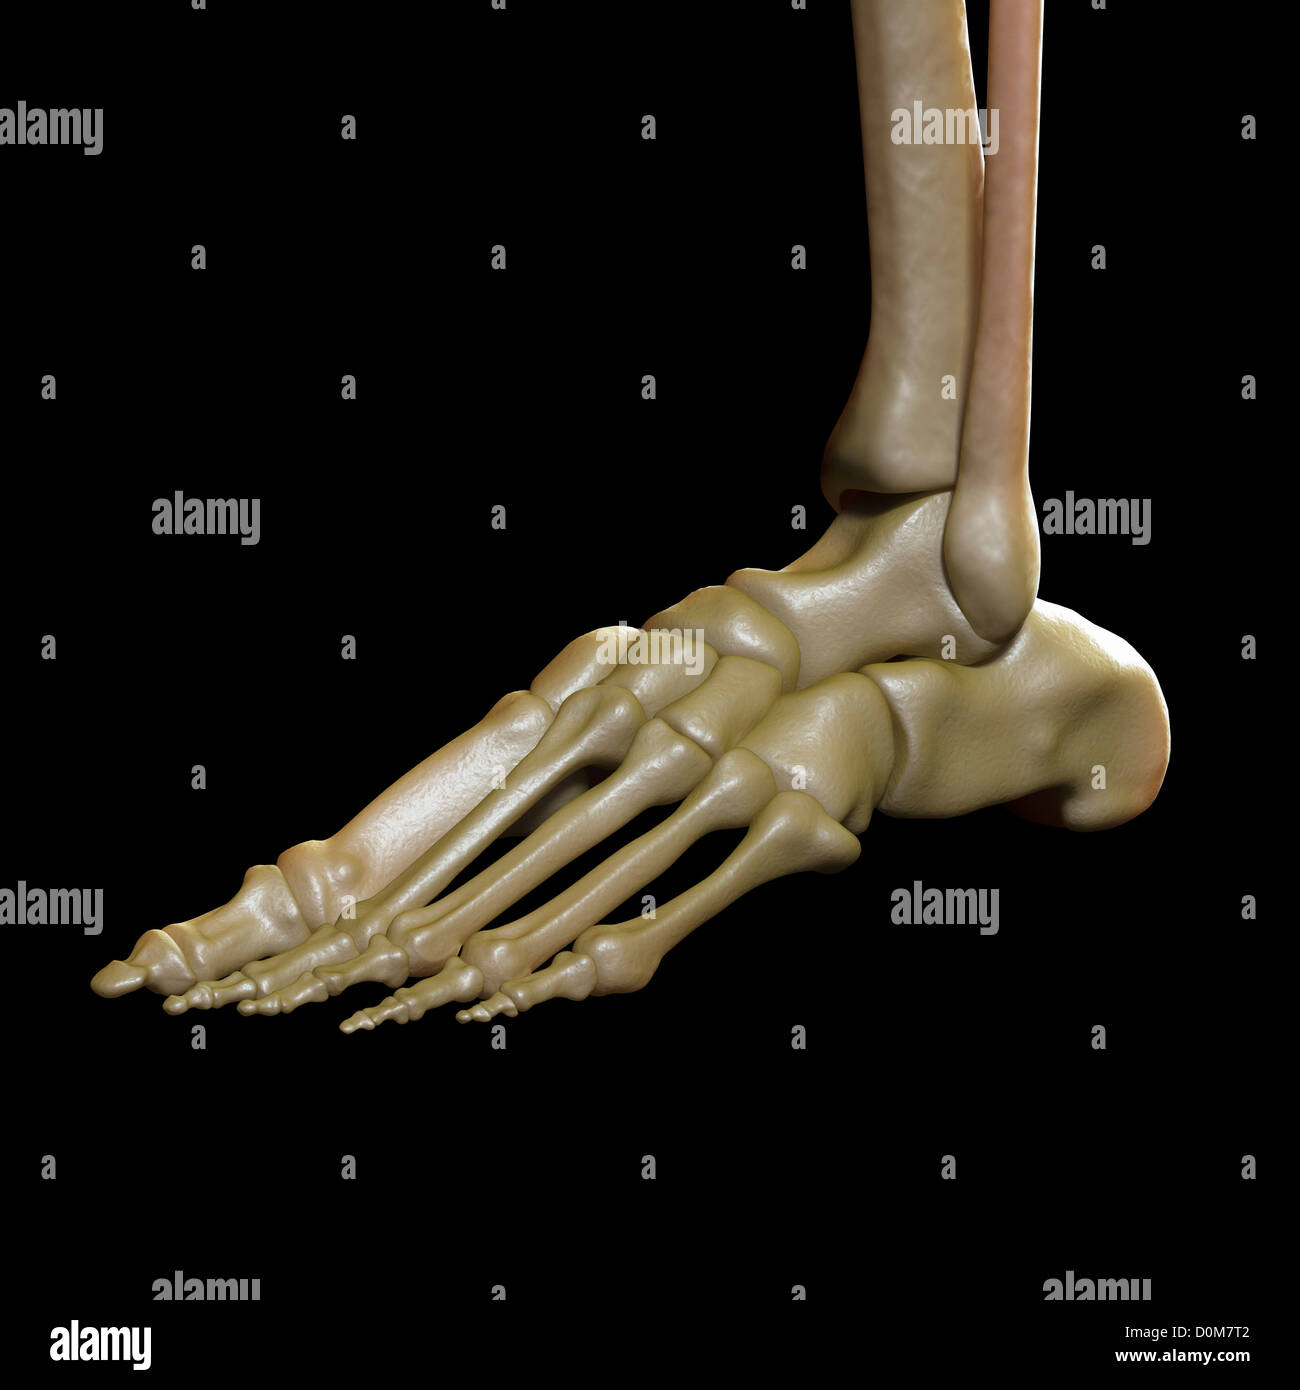 Three-quarter view of the bones of the left foot and ankle joint. - Stock Image